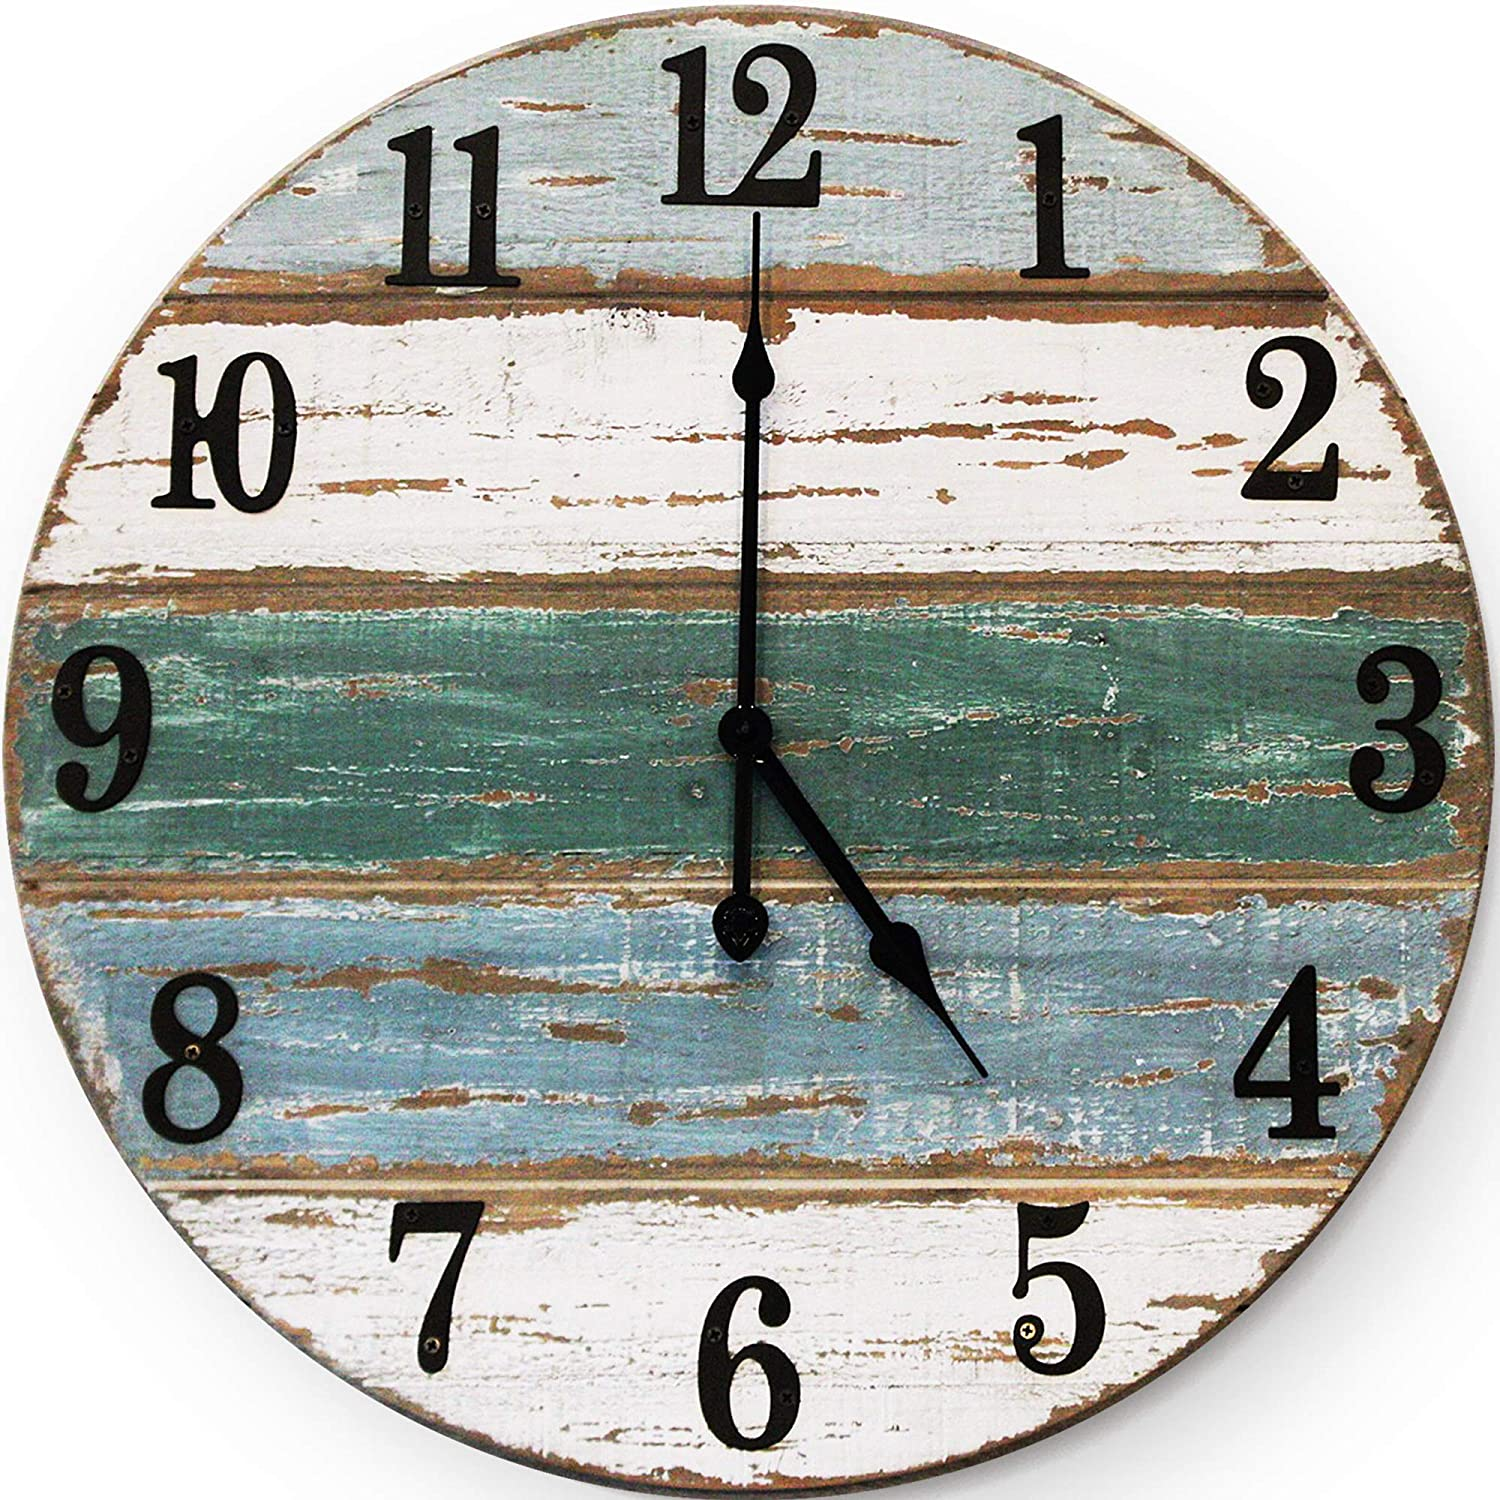 Wallcharmers 18 inch Beach Clock | Handmade Cedar Wood Beach Wall Clock | Great Ocean Clock On Lake Time Clock Coastal Wall Clock Beach Theme Clock Tropical Clock Beach Wall Clocks Beachy Wall Clock